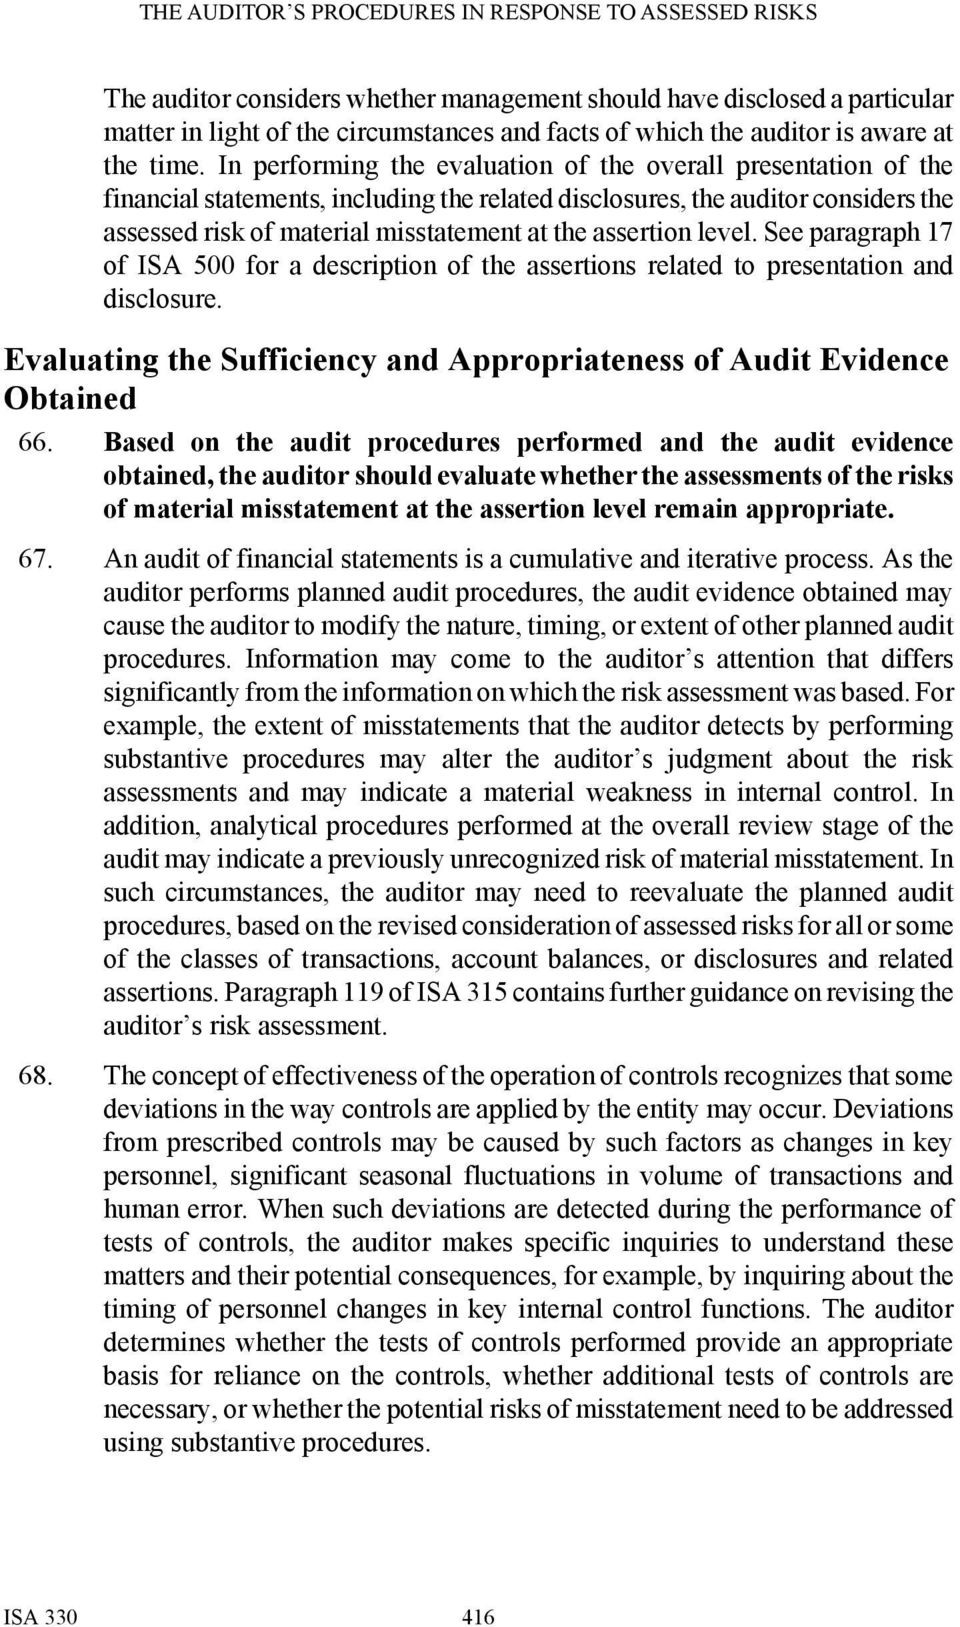 assertion level. See paragraph 17 of ISA 500 for a description of the assertions related to presentation and disclosure. Evaluating the Sufficiency and Appropriateness of Audit Evidence Obtained 66.